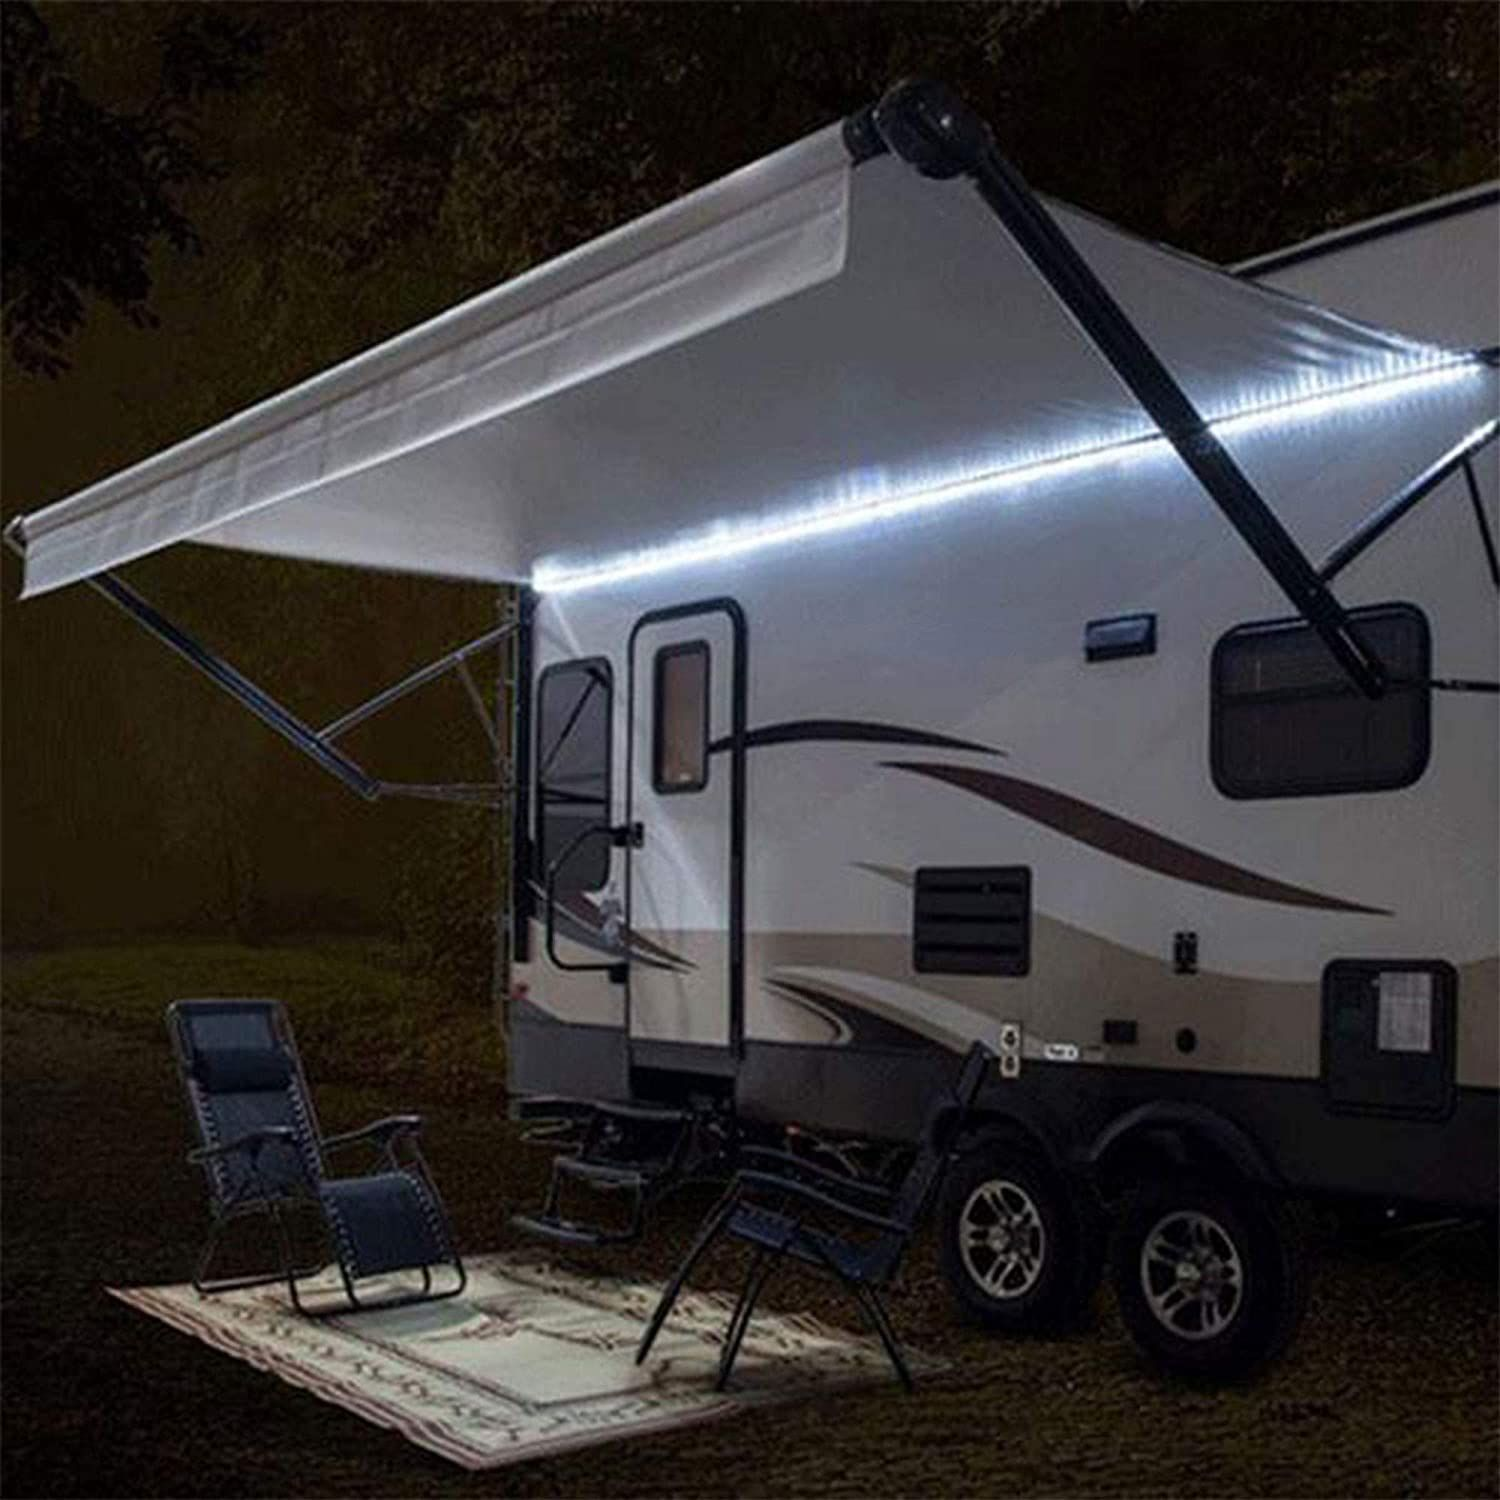 The 10 Best Rv Awning Lights Review Buying Guide In 2020 In 2020 Rv Campers Motorhome Rv Upgrades Awning Lights